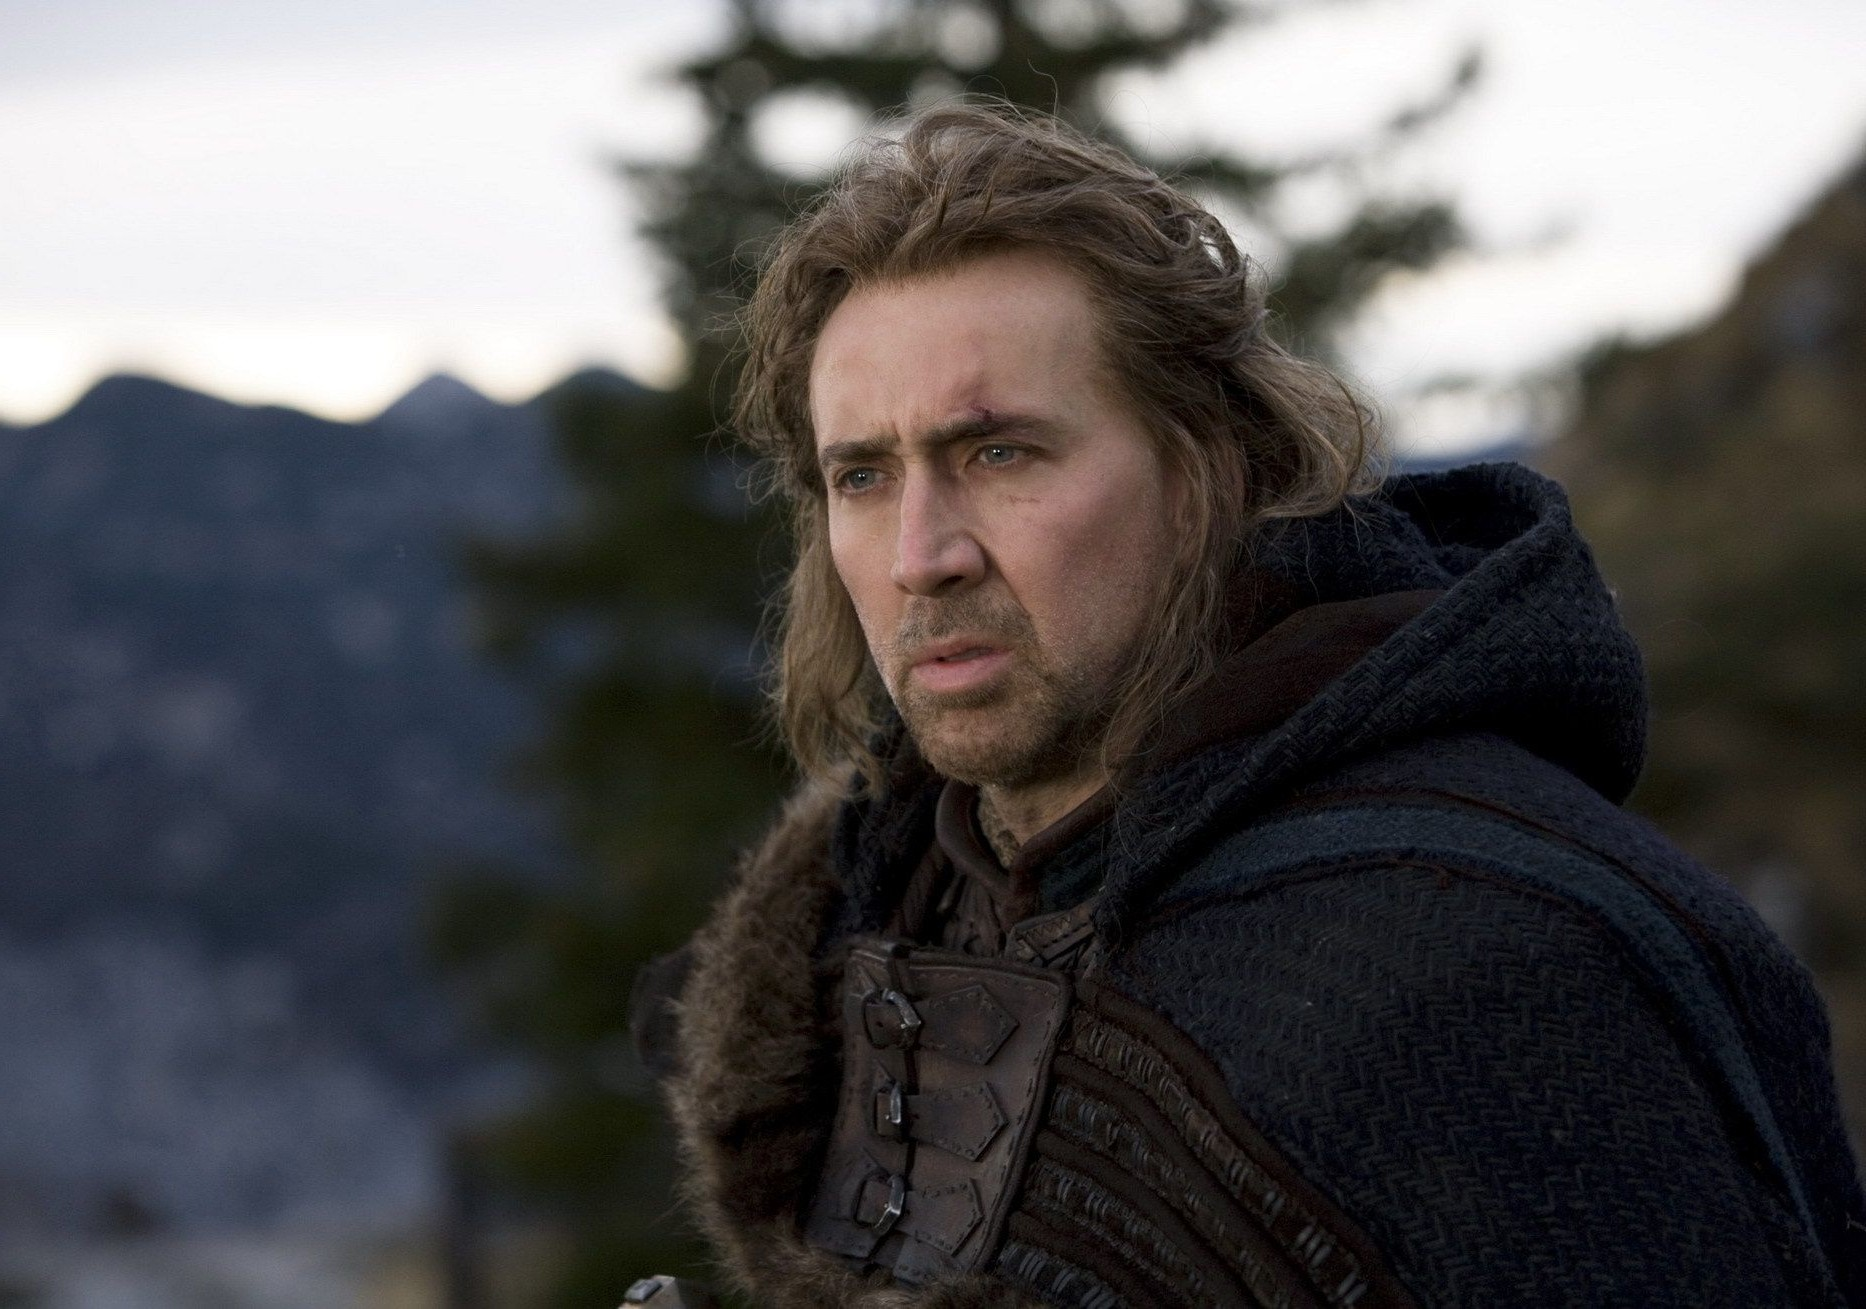 Nicolas cage film season of the witch actor the pensive look